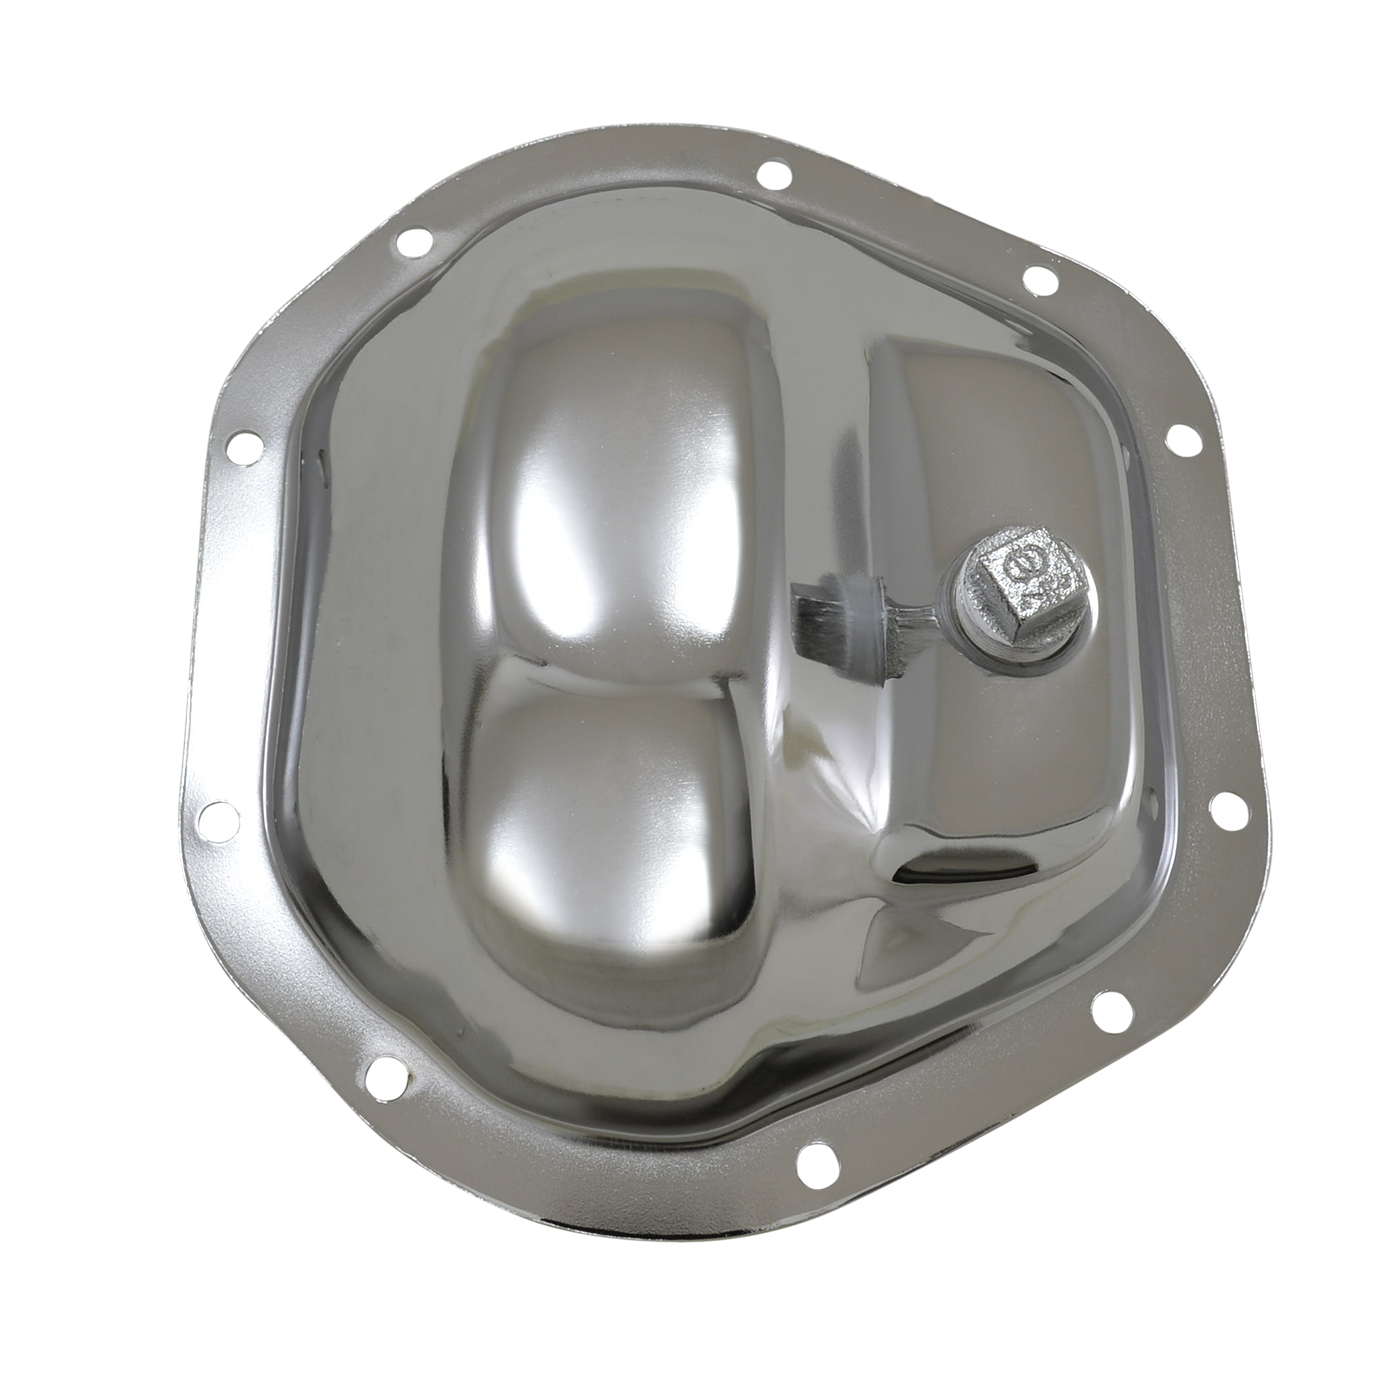 YP C1-D44-STD - Replacement Chrome Cover for Dana 44